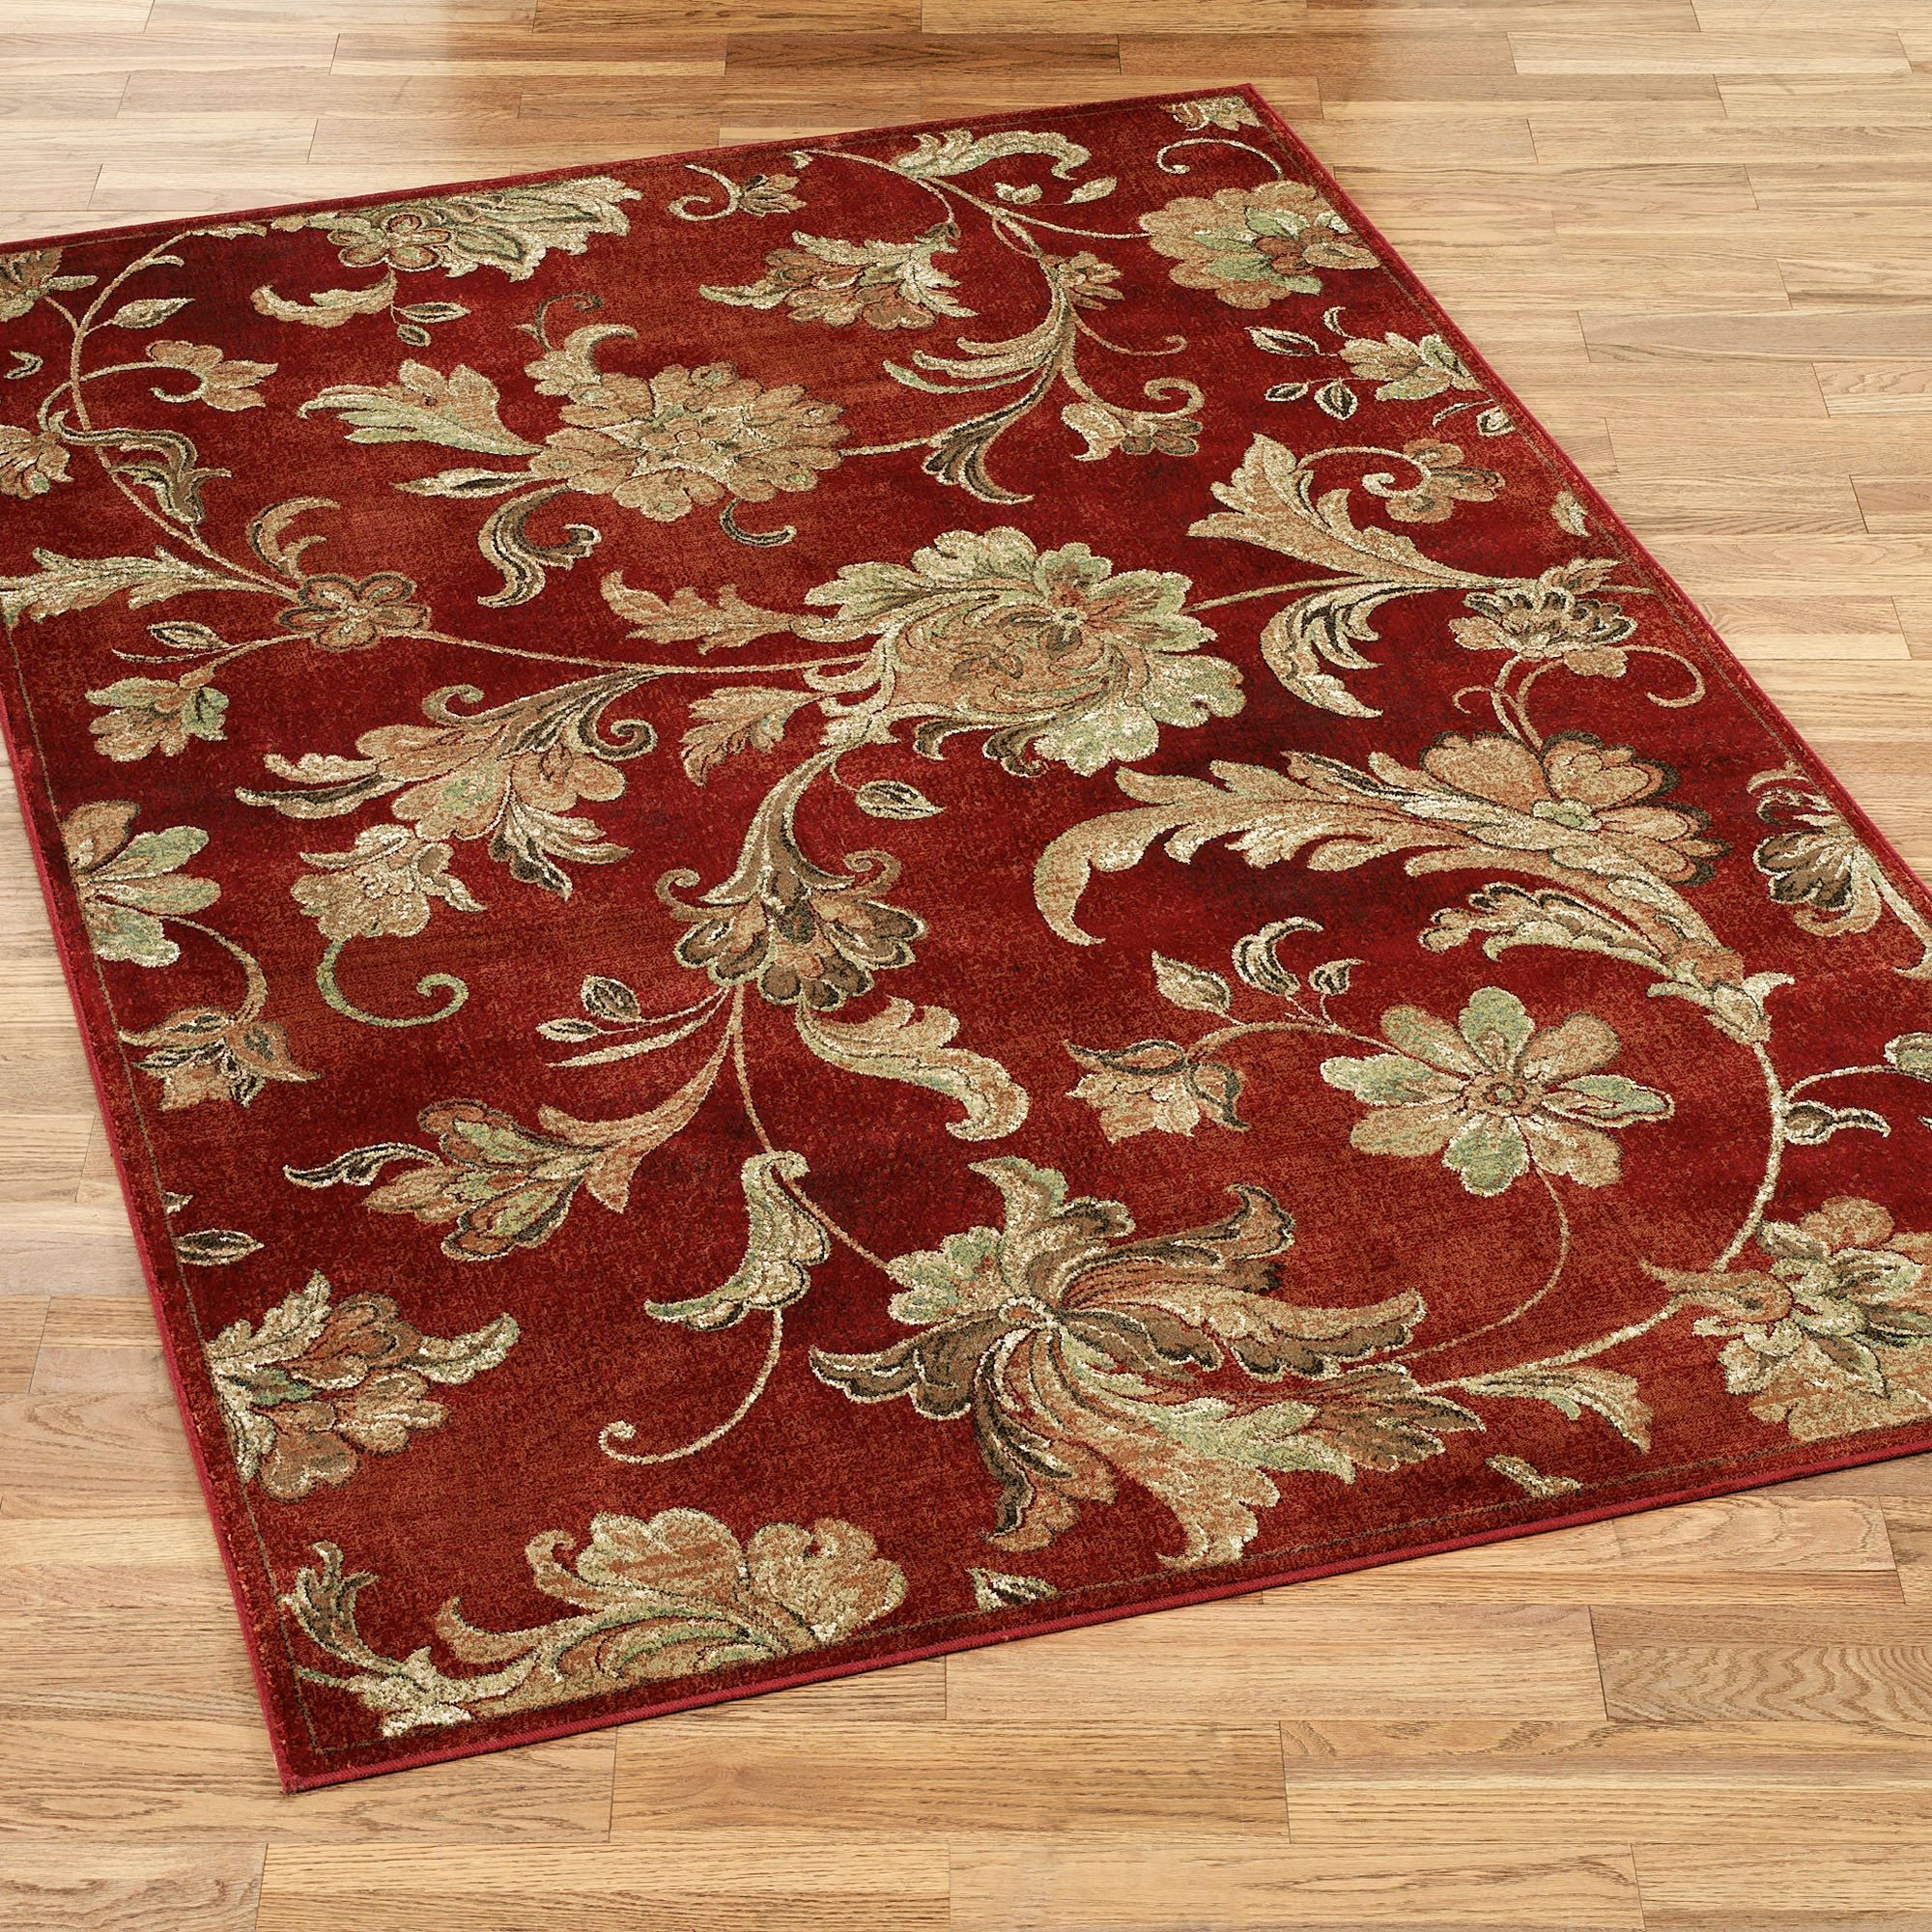 Cool Area Rugs Burgundy Area Rugs Cheap Carpet Fabric Area Rugs